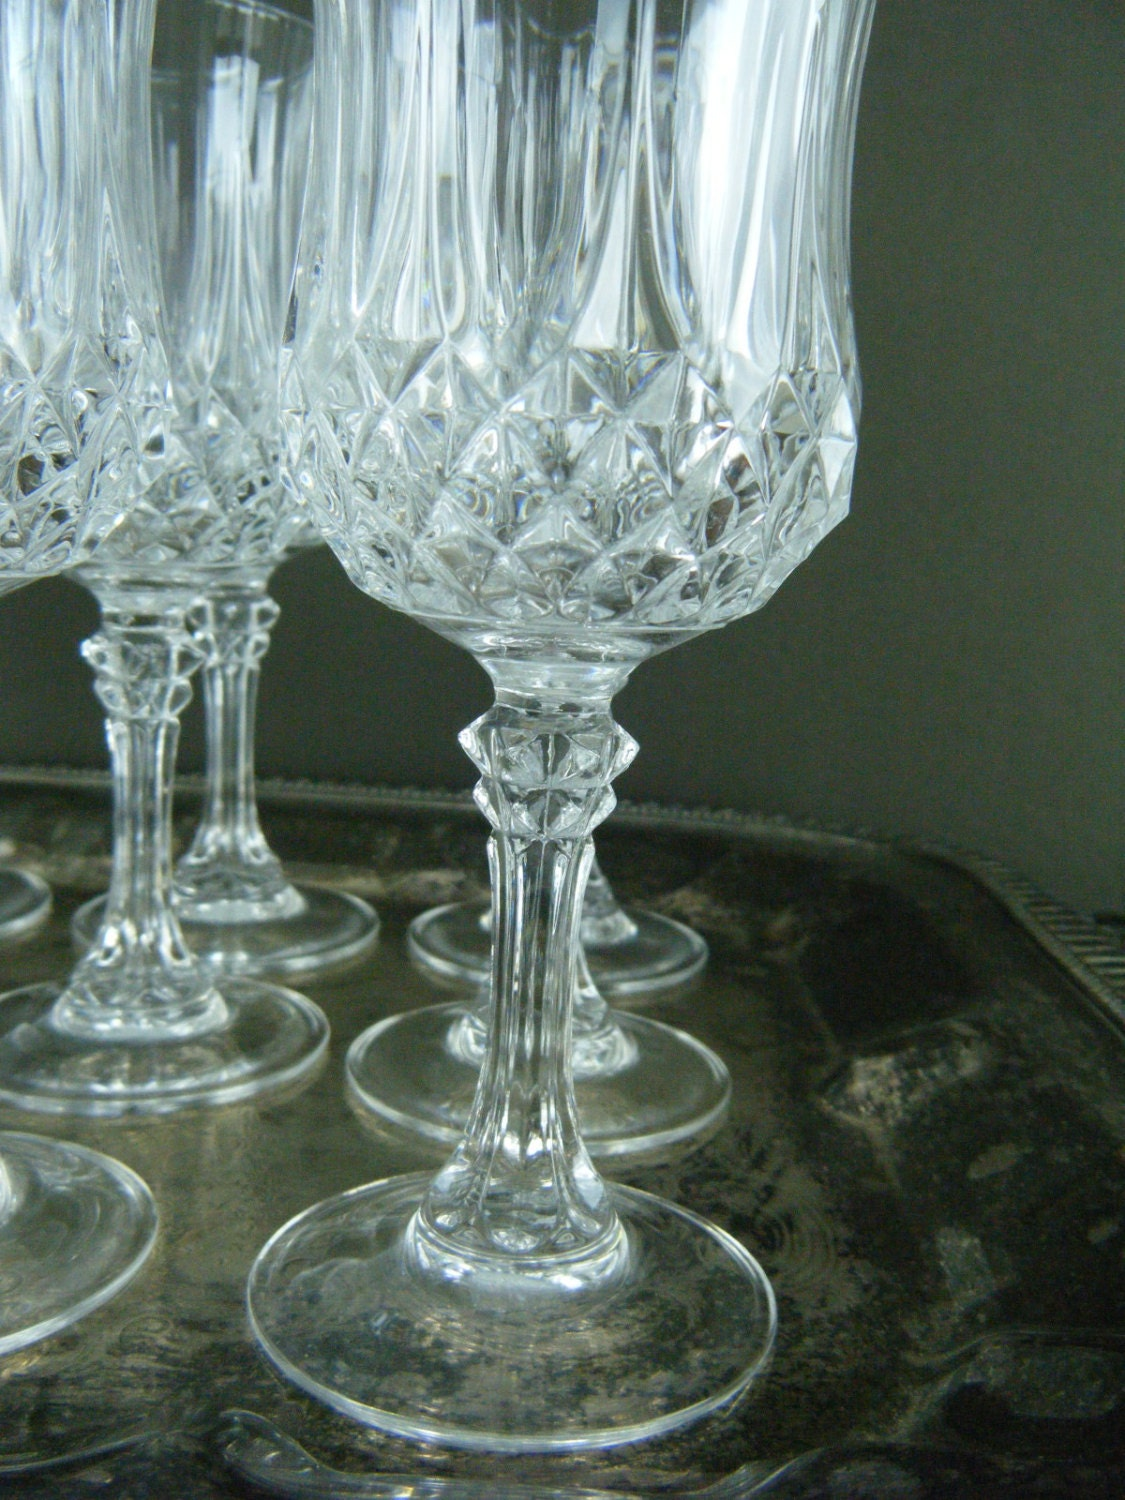 Exquisite Crystal Wine Glasses Thick Leaded Crystal With